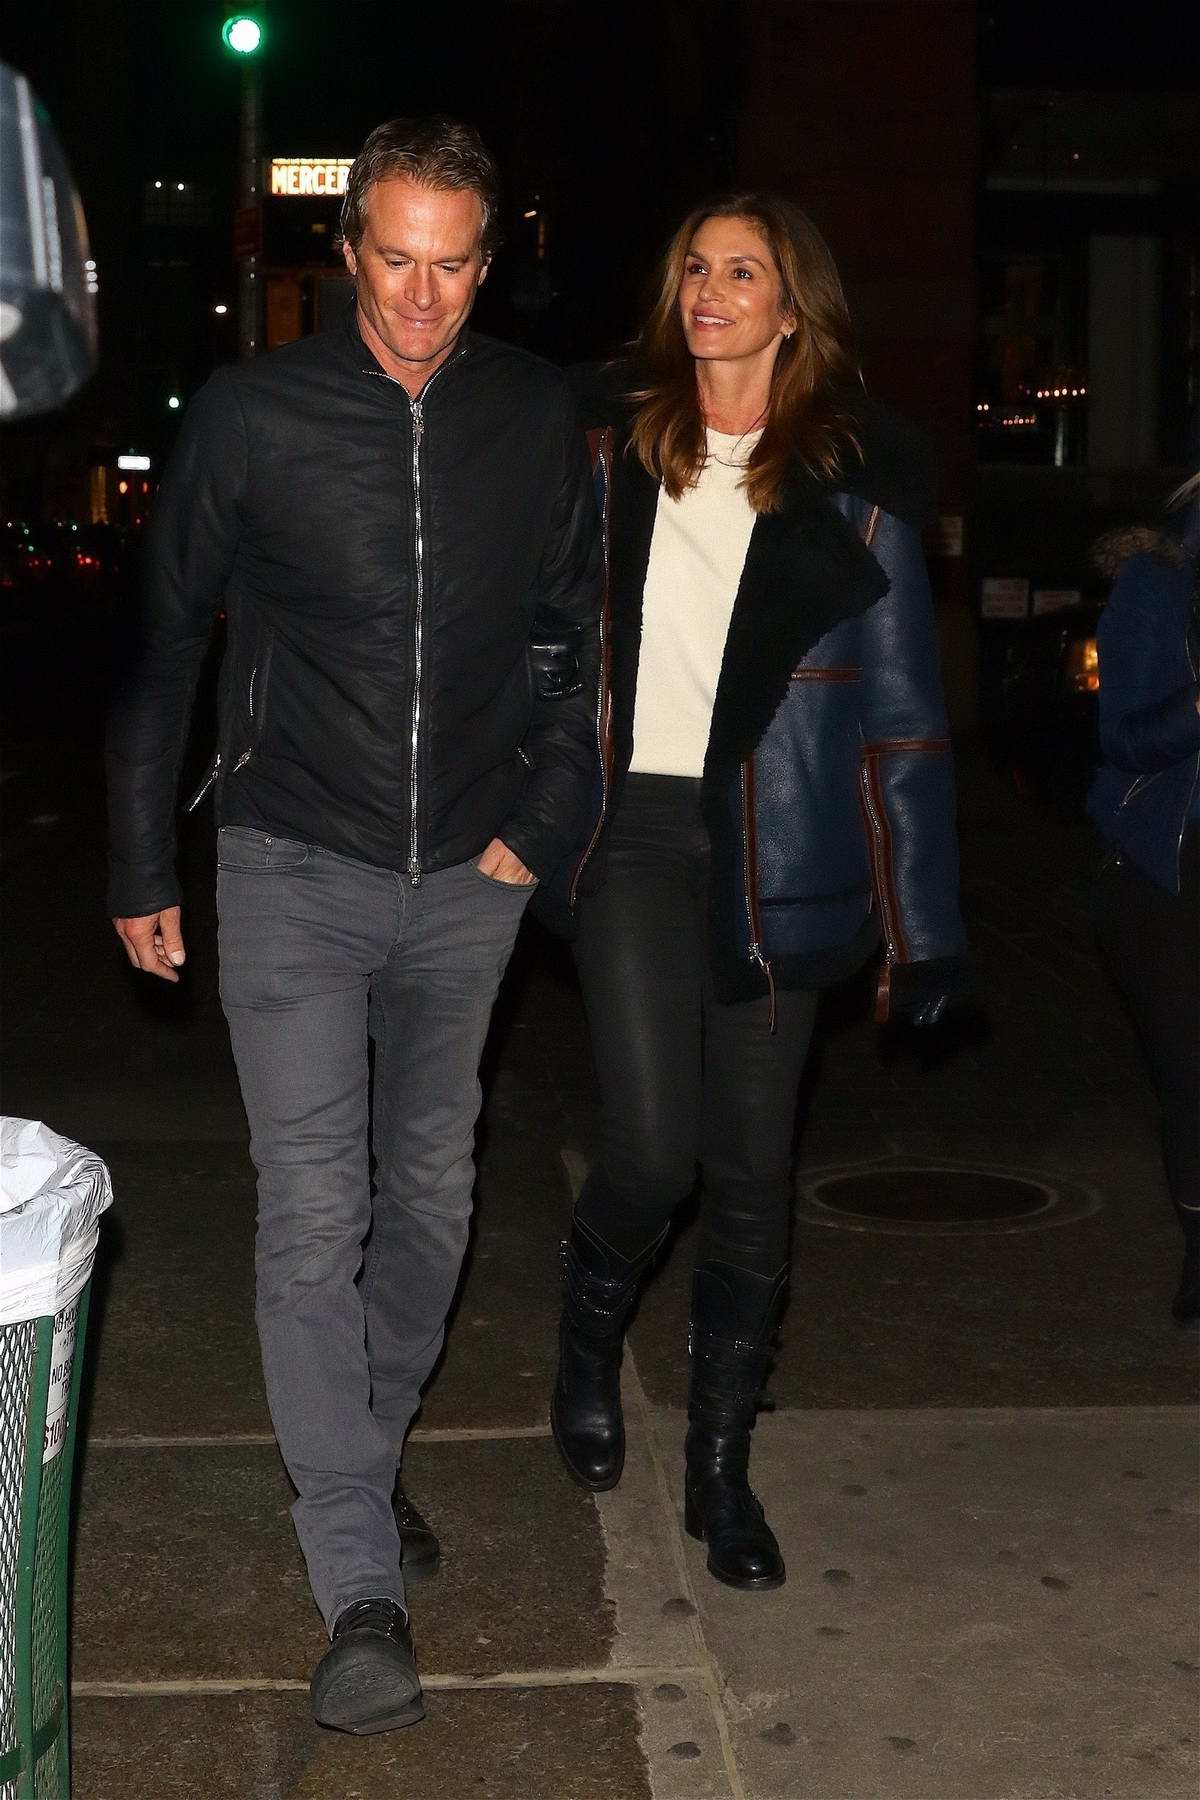 Cindy Crawford and Randy Gerber head out for Valentine's Day dinner in New York City